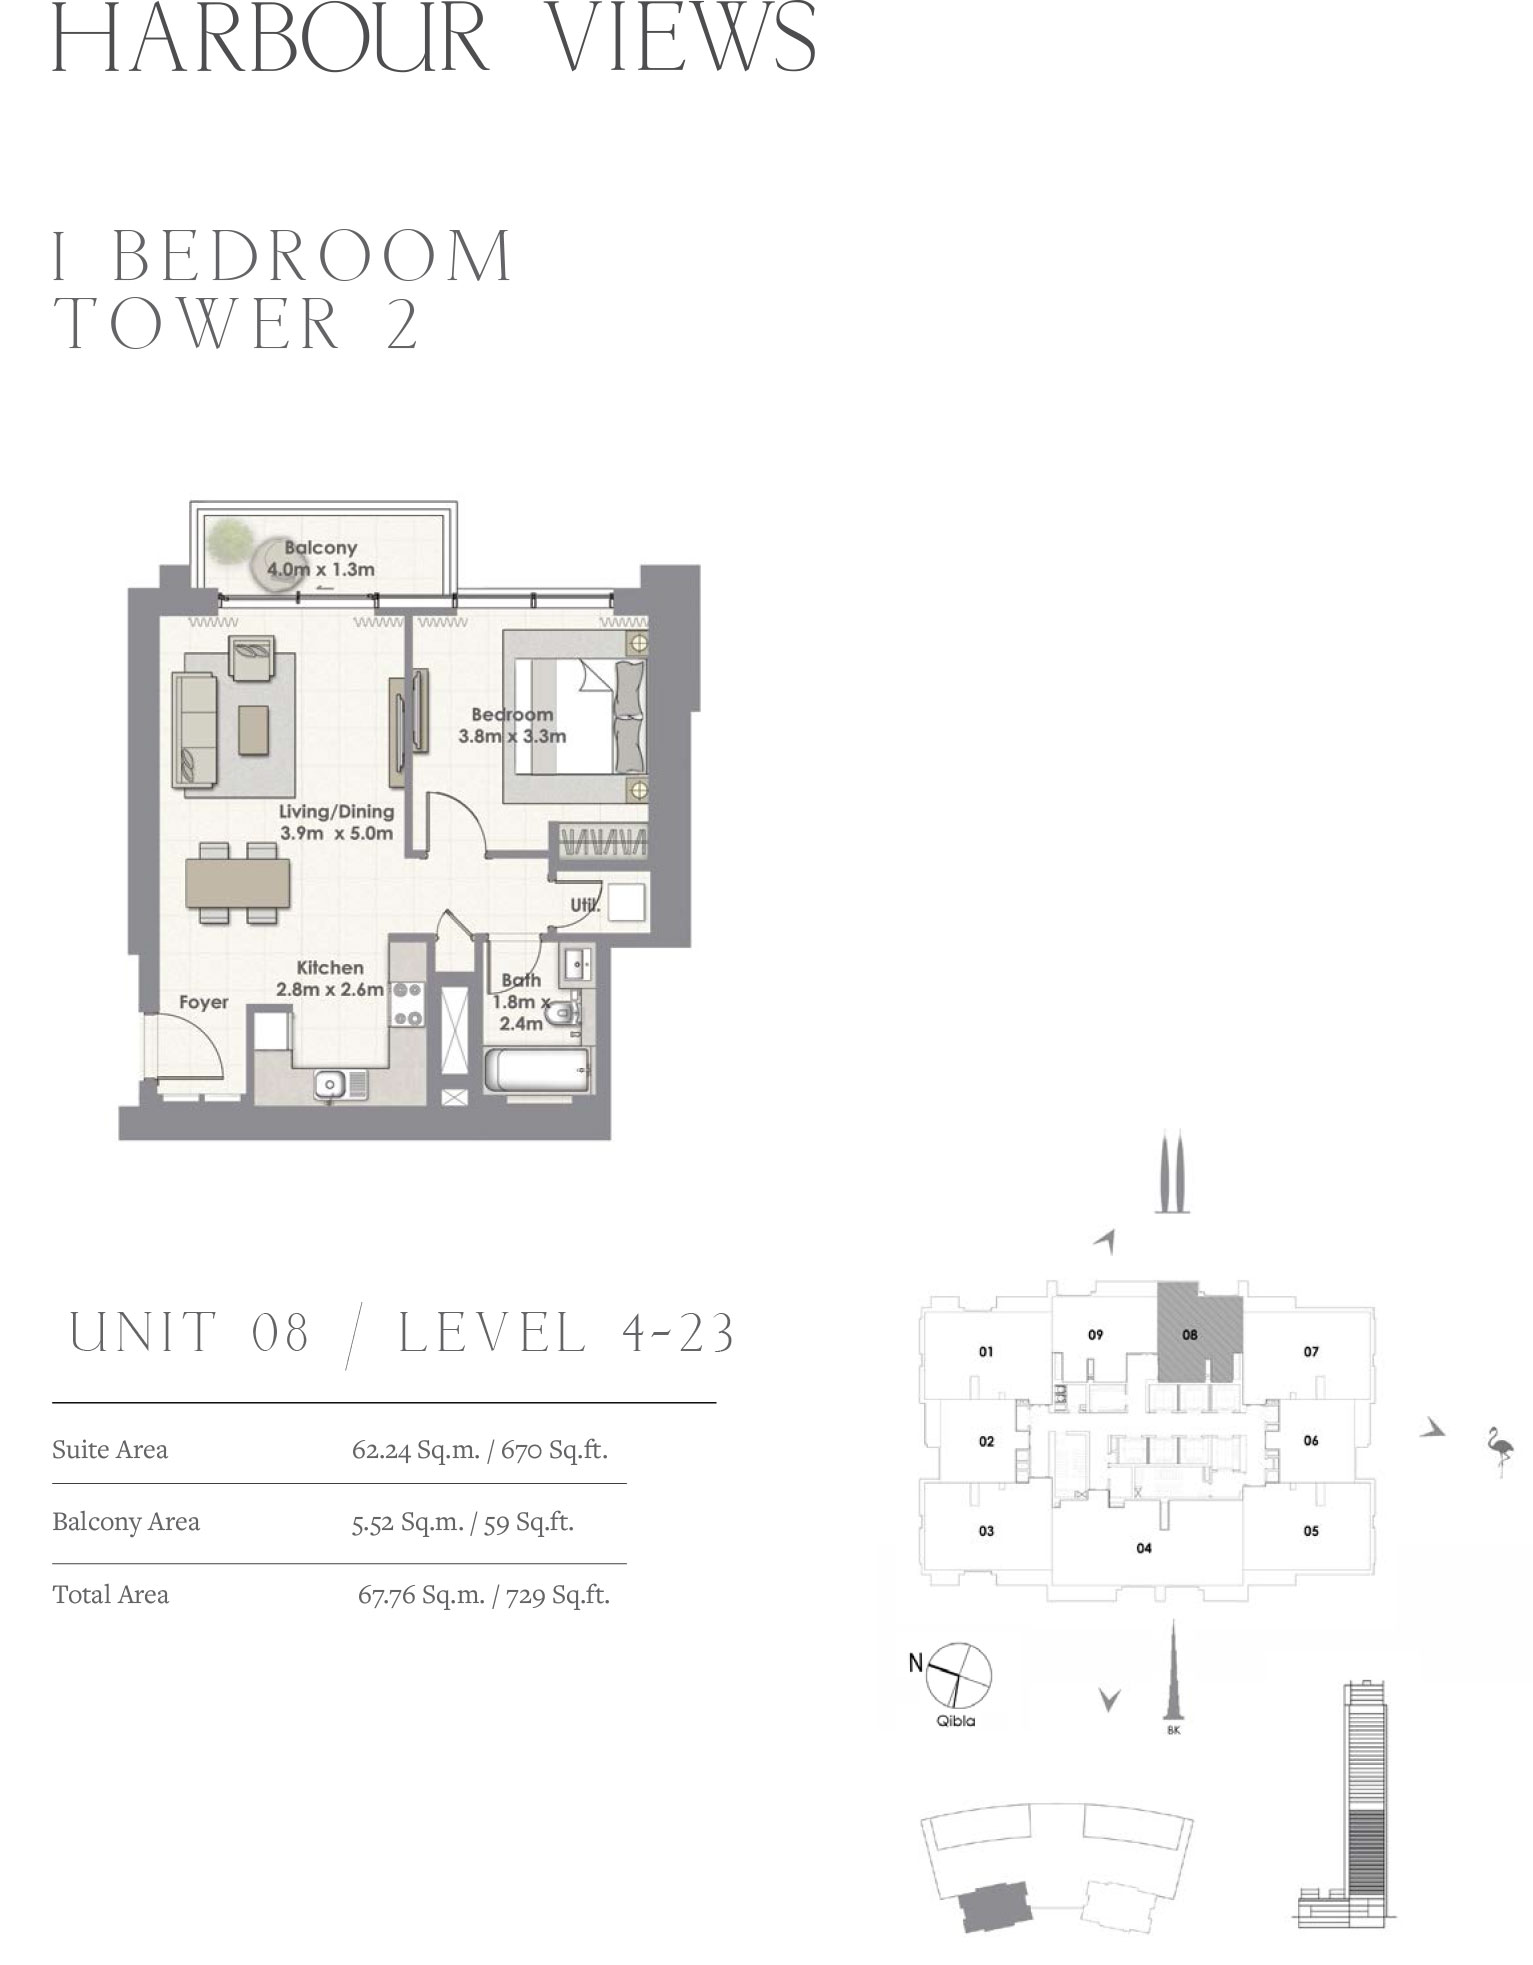 1 Bedroom Tower 2, Unit 08/Level 4-23